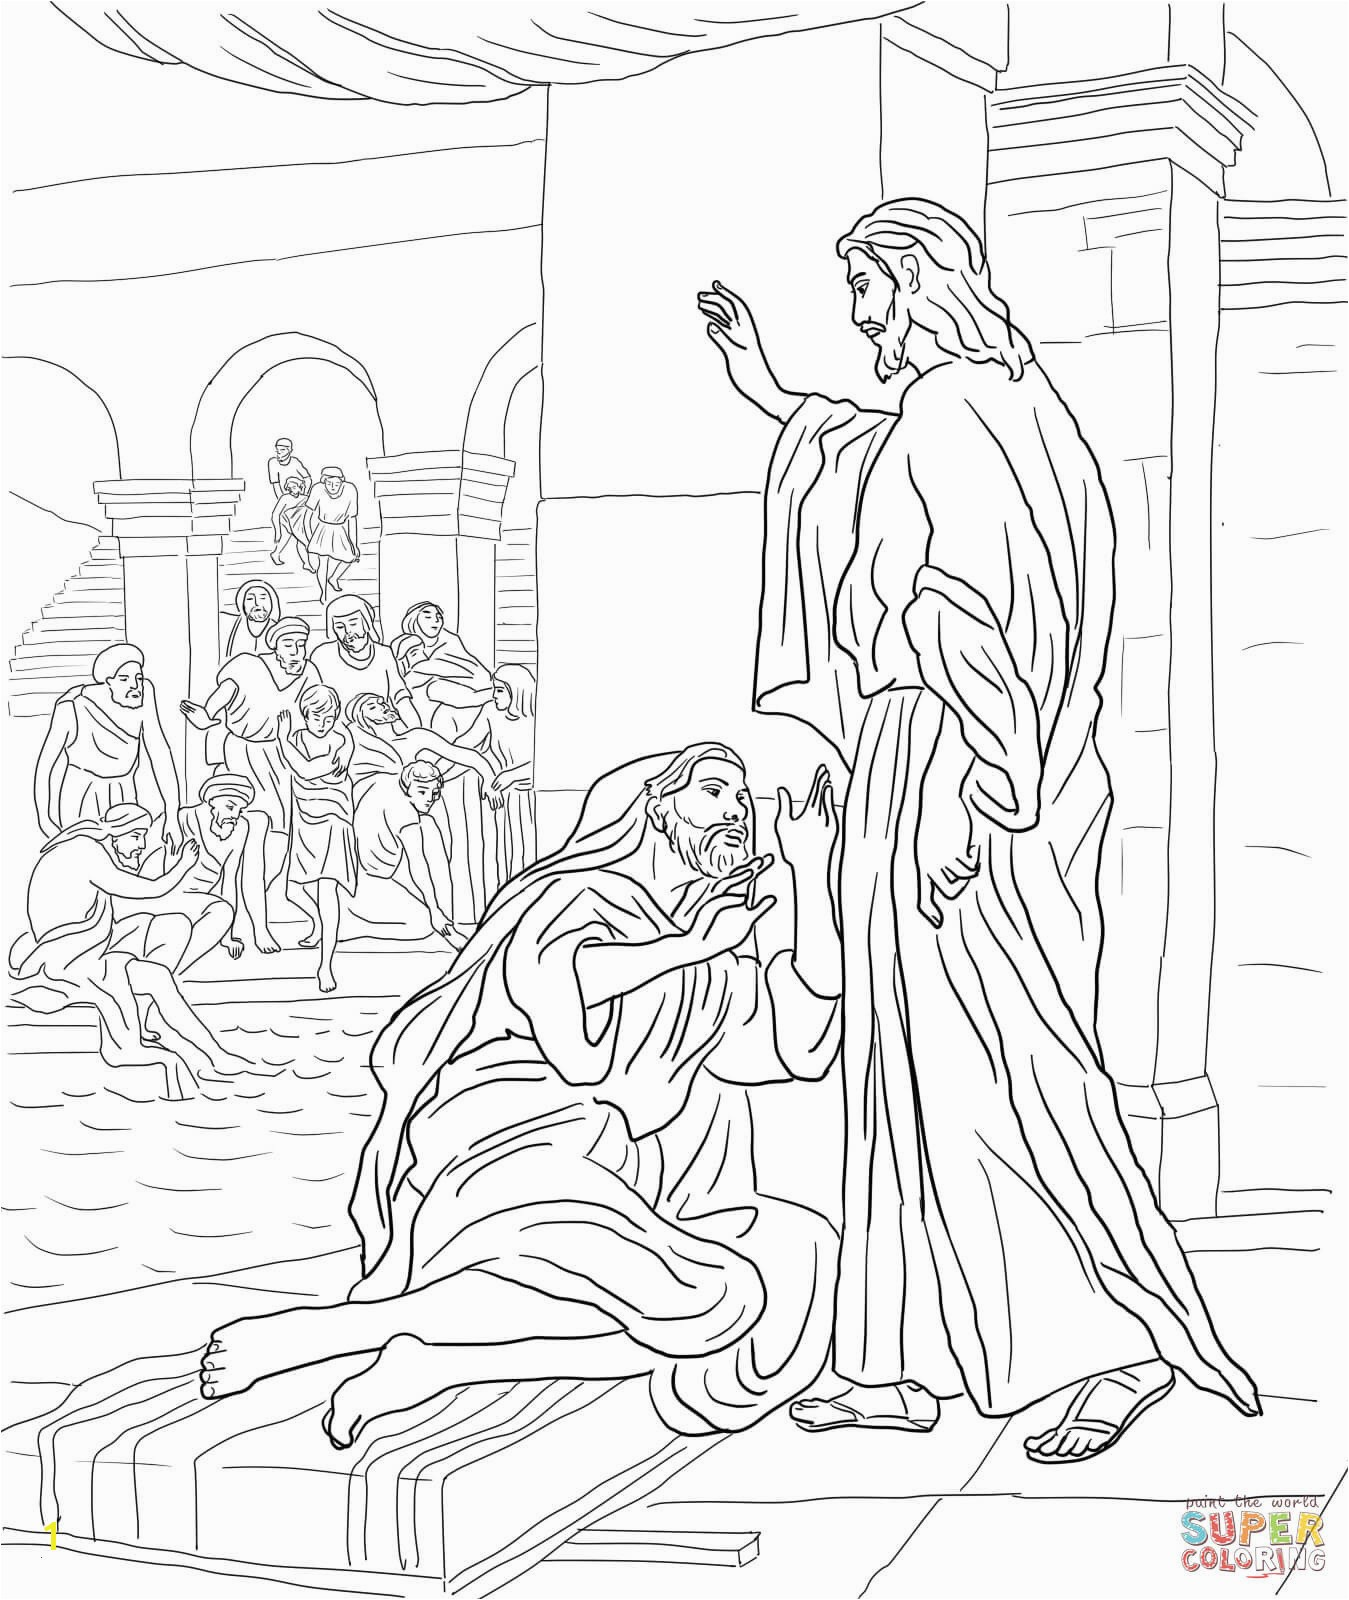 Jesus Heals Coloring Page Inspirational Beautiful Jesus Heals 10 Lepers Coloring Page Letramac Image